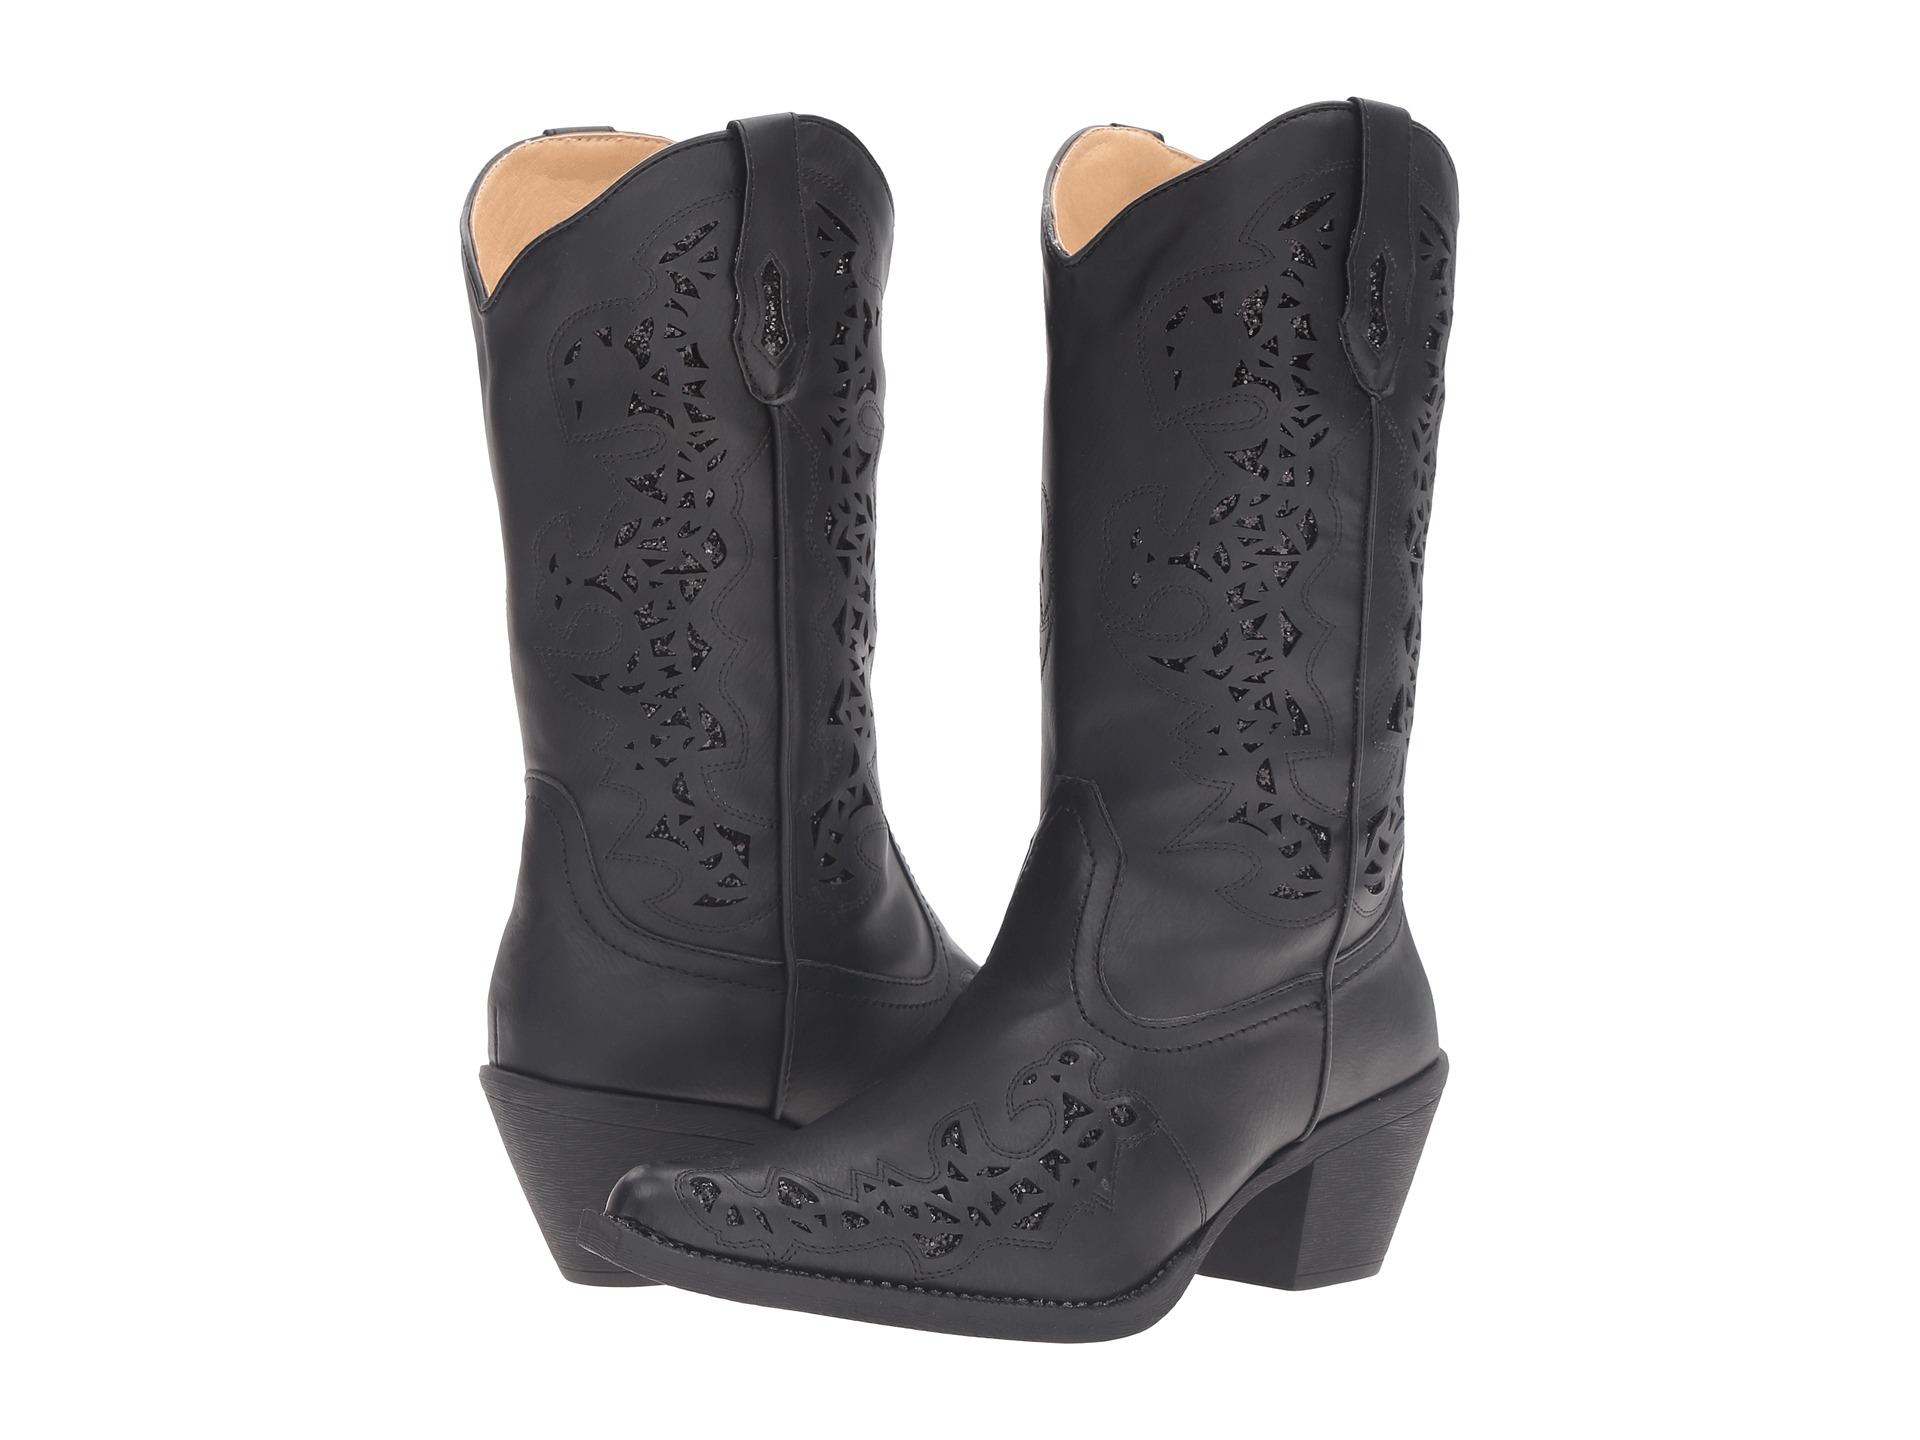 Boots, Cowboy Boots, Women | Shipped Free at Zappos